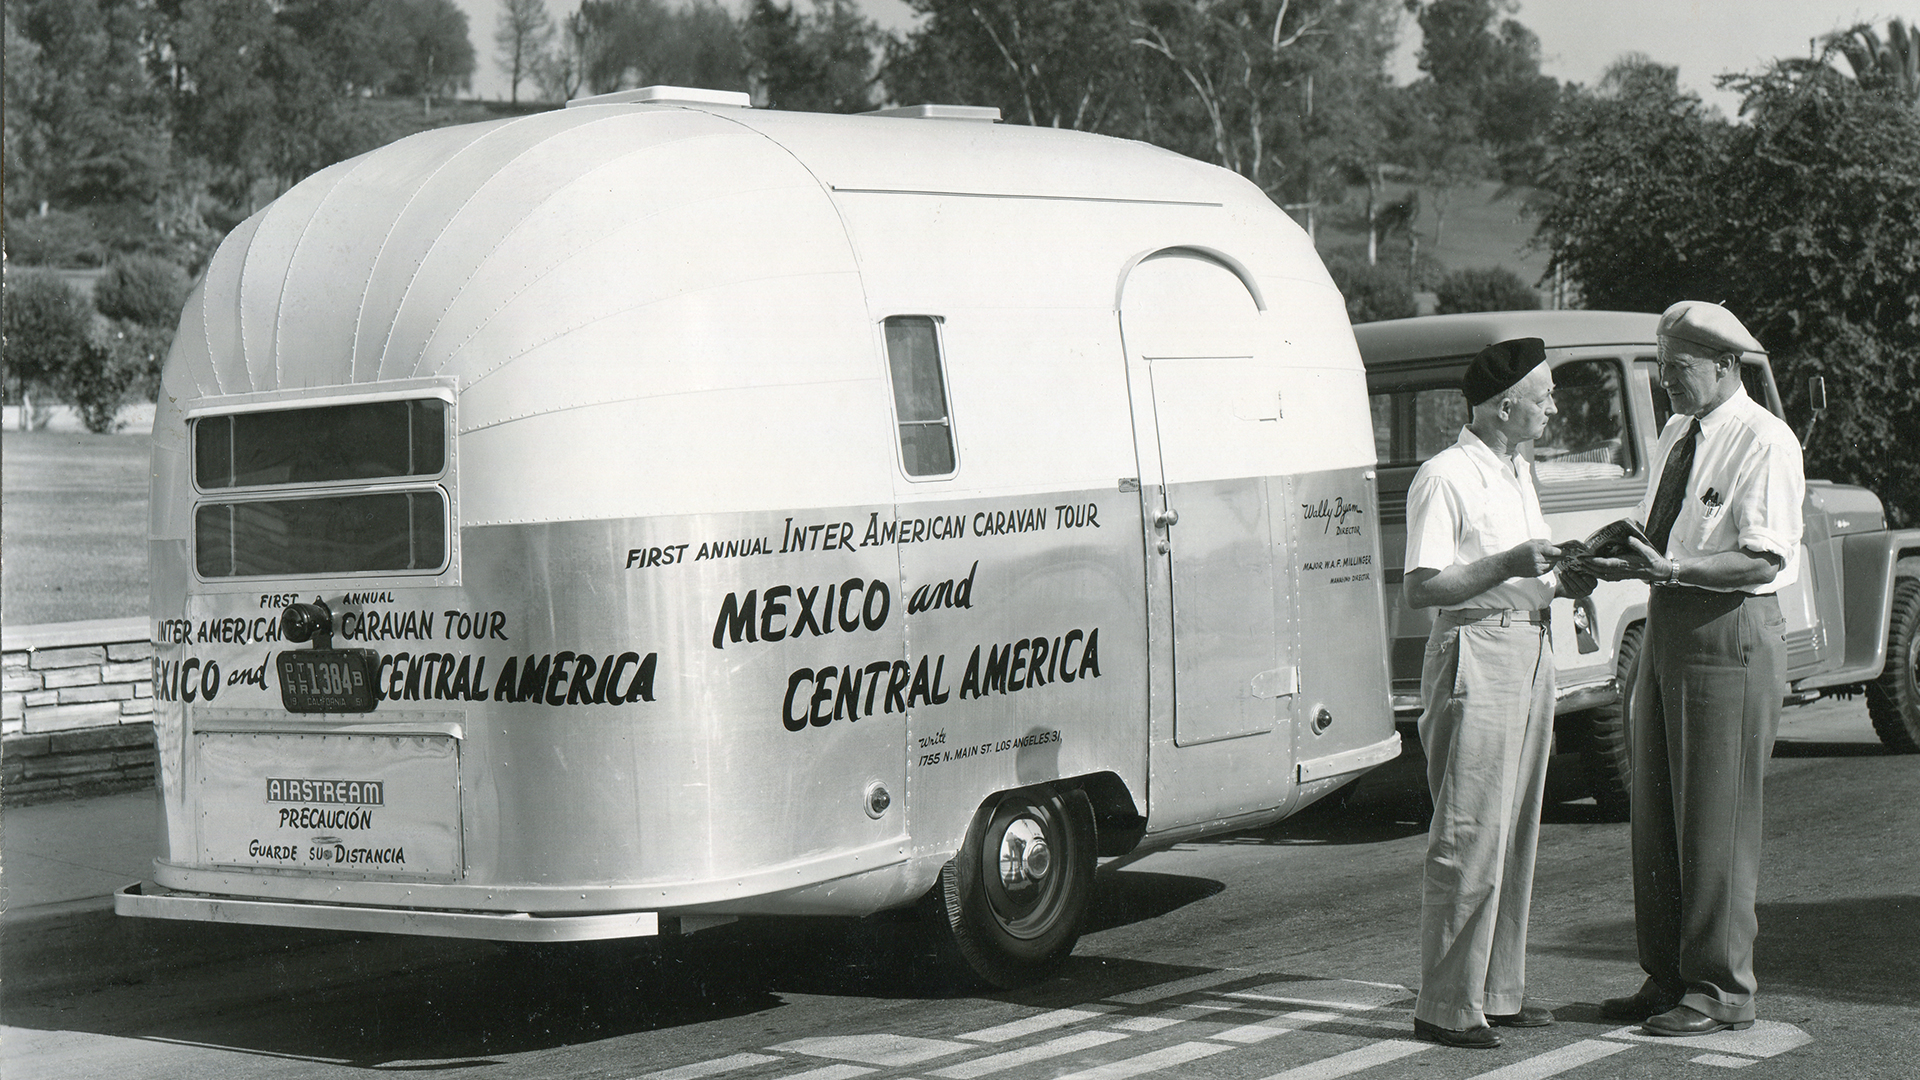 Airstream-Wally-Byam-Mexico-and-Central-America-Caravan-First-1951-1952-1